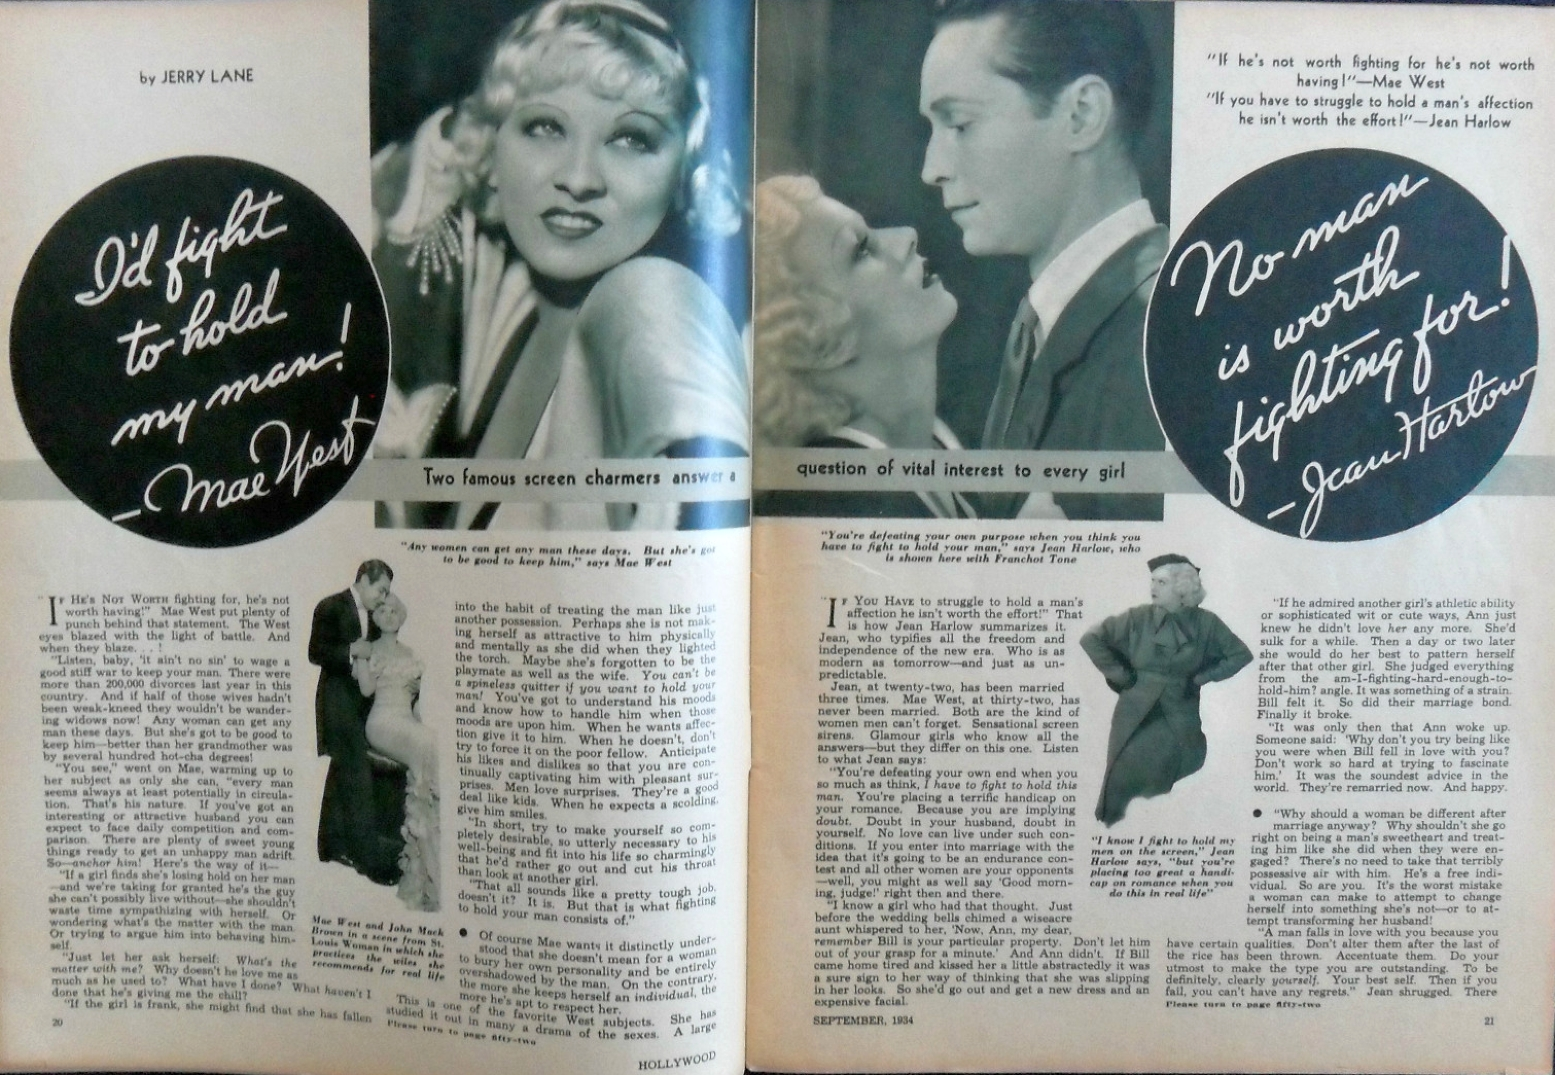 hollywood magazine september 1934a jean harlow mae west